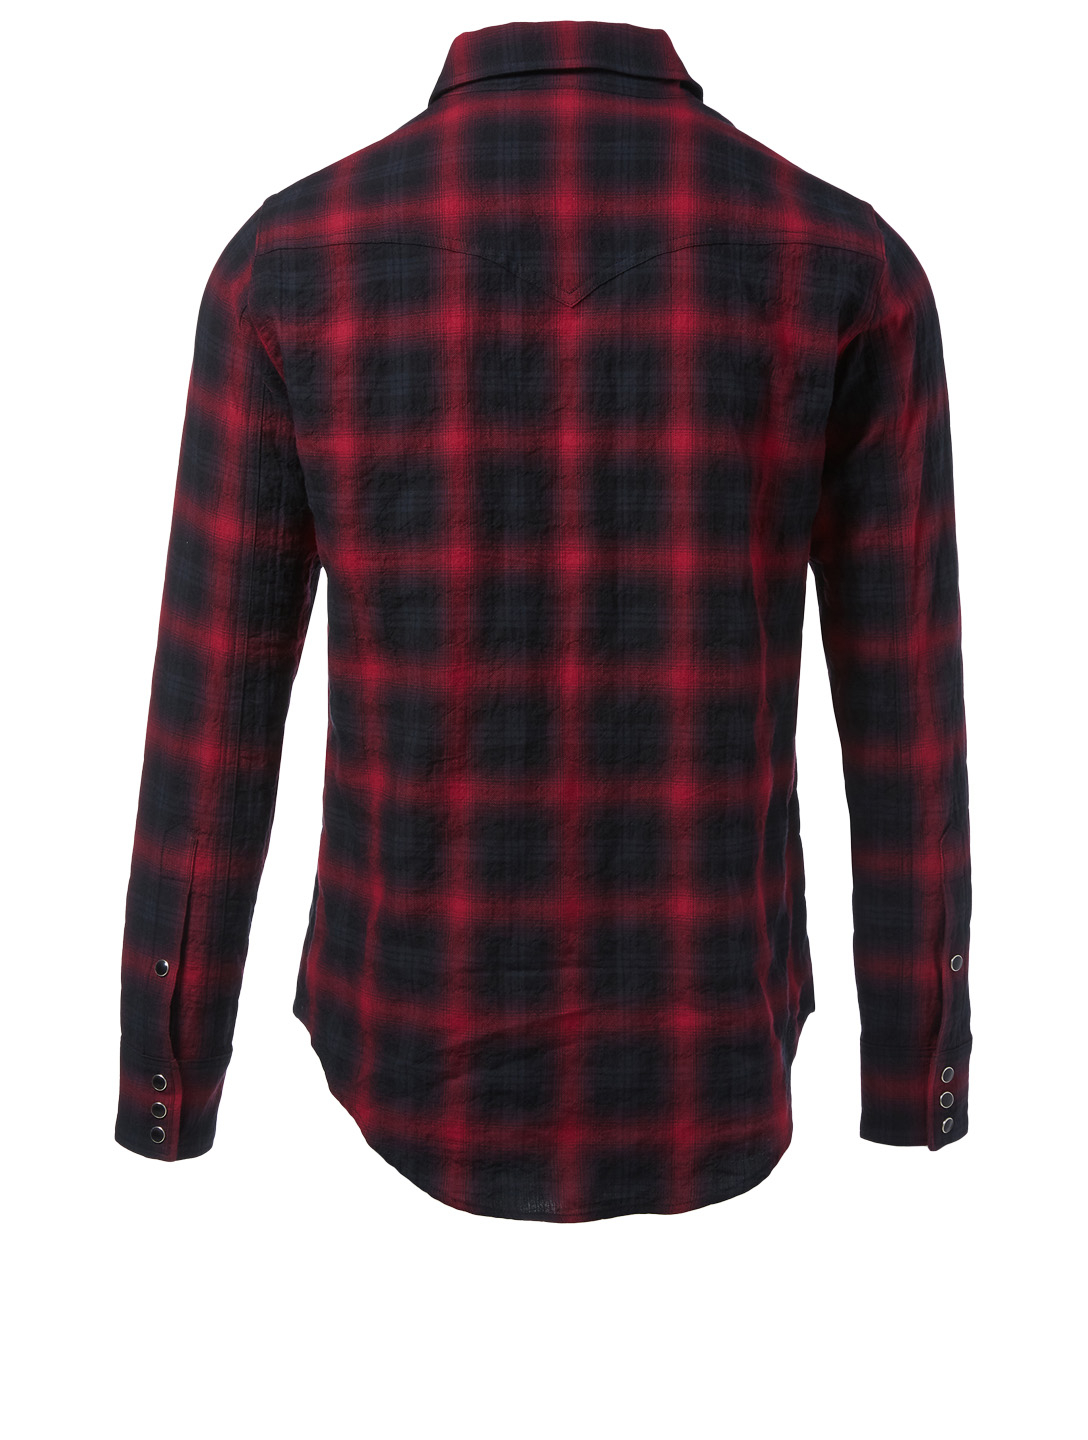 SAINT LAURENT Cotton Shirt In Check Print Men's Multi